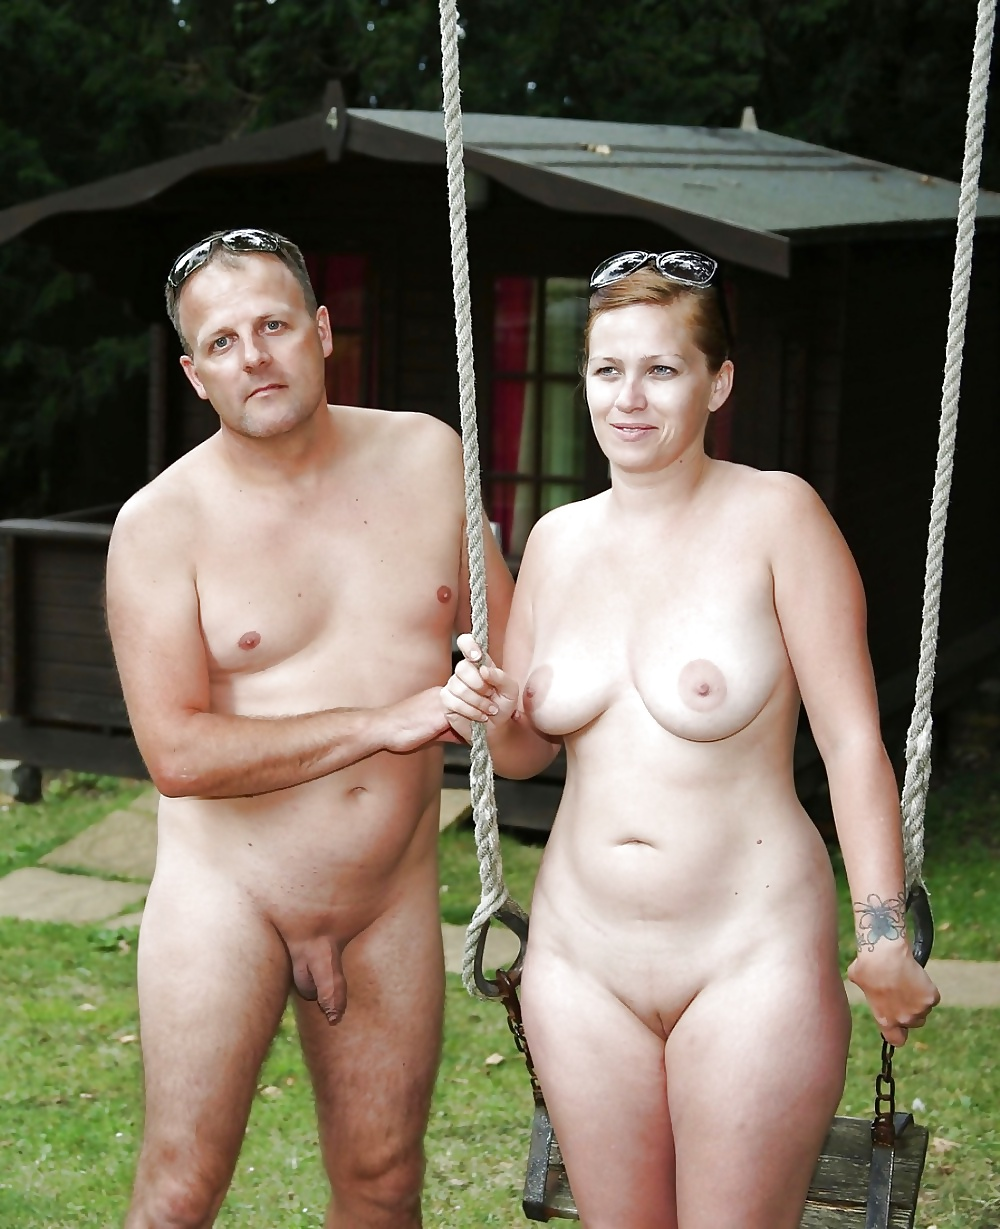 Opinion not Nudist photos couples tumblr consider, that